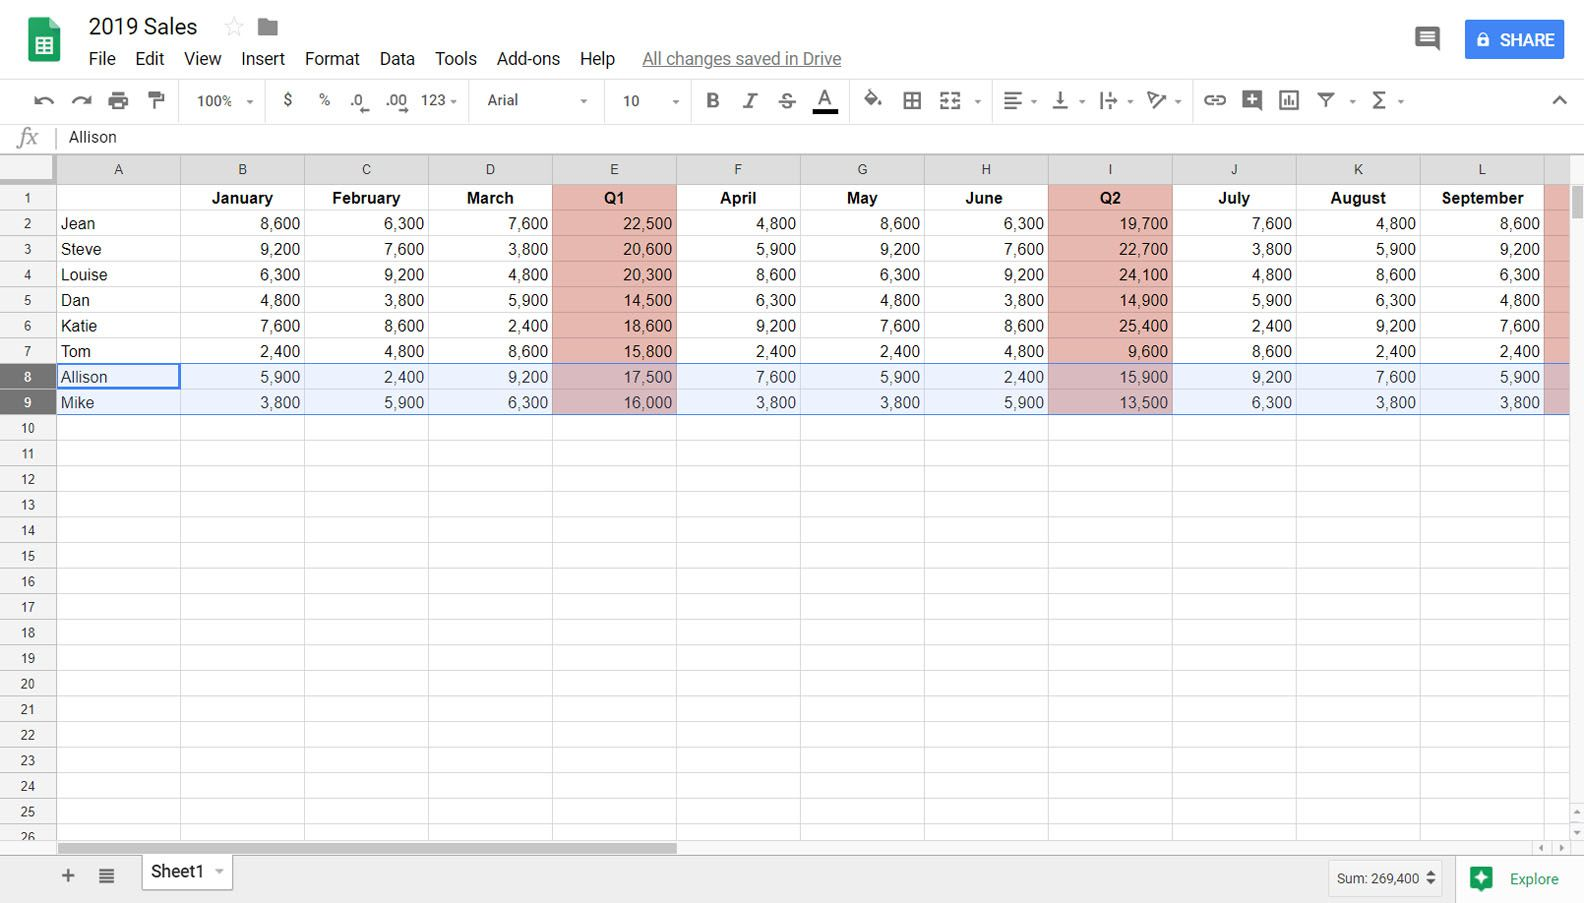 How To Hide Or Unhide Rows In Sheets